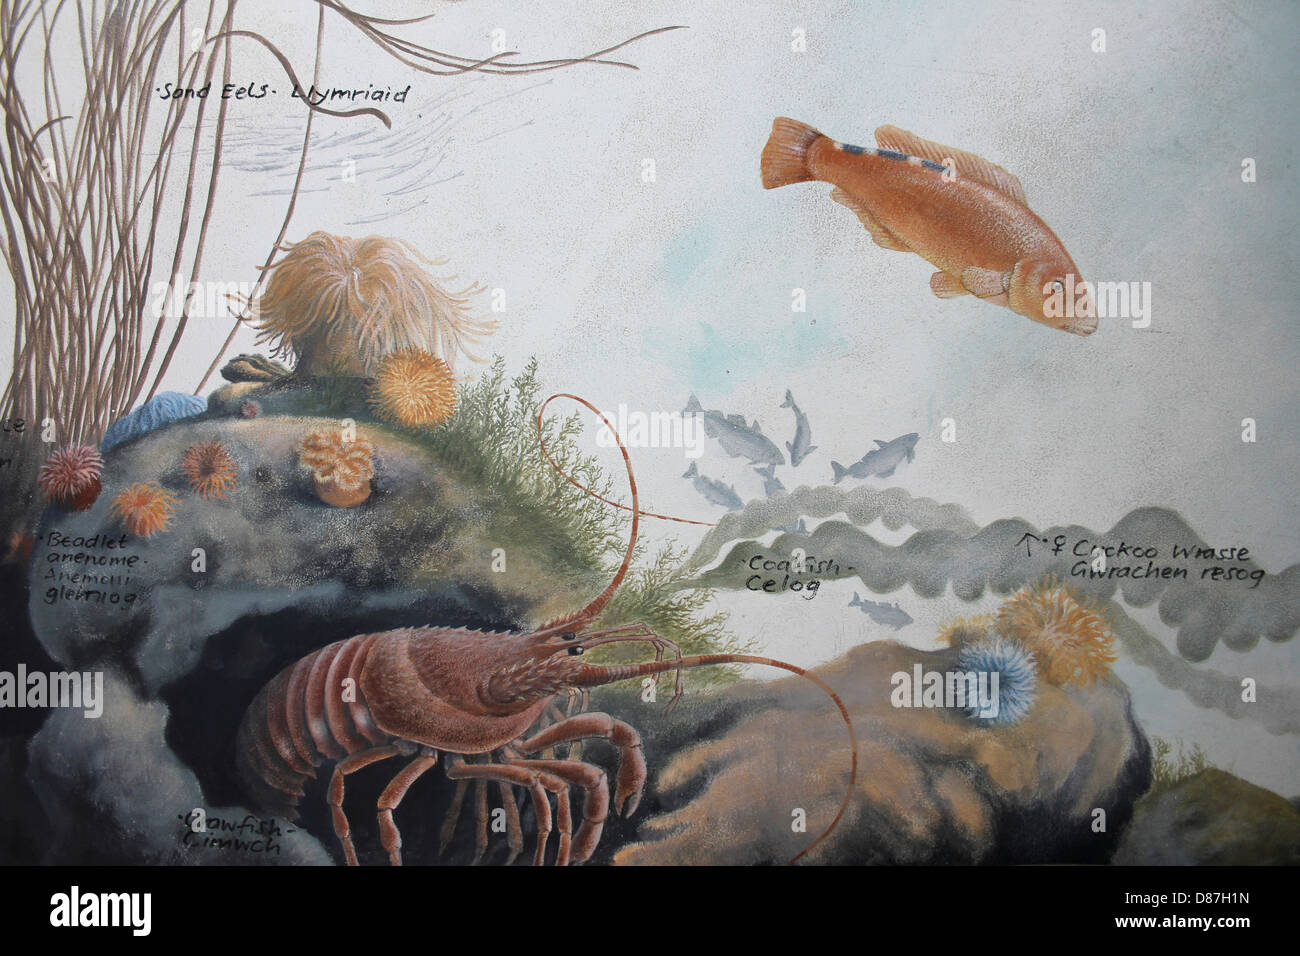 Painting Depicting Marine Life In The Irish Sea - Stock Image